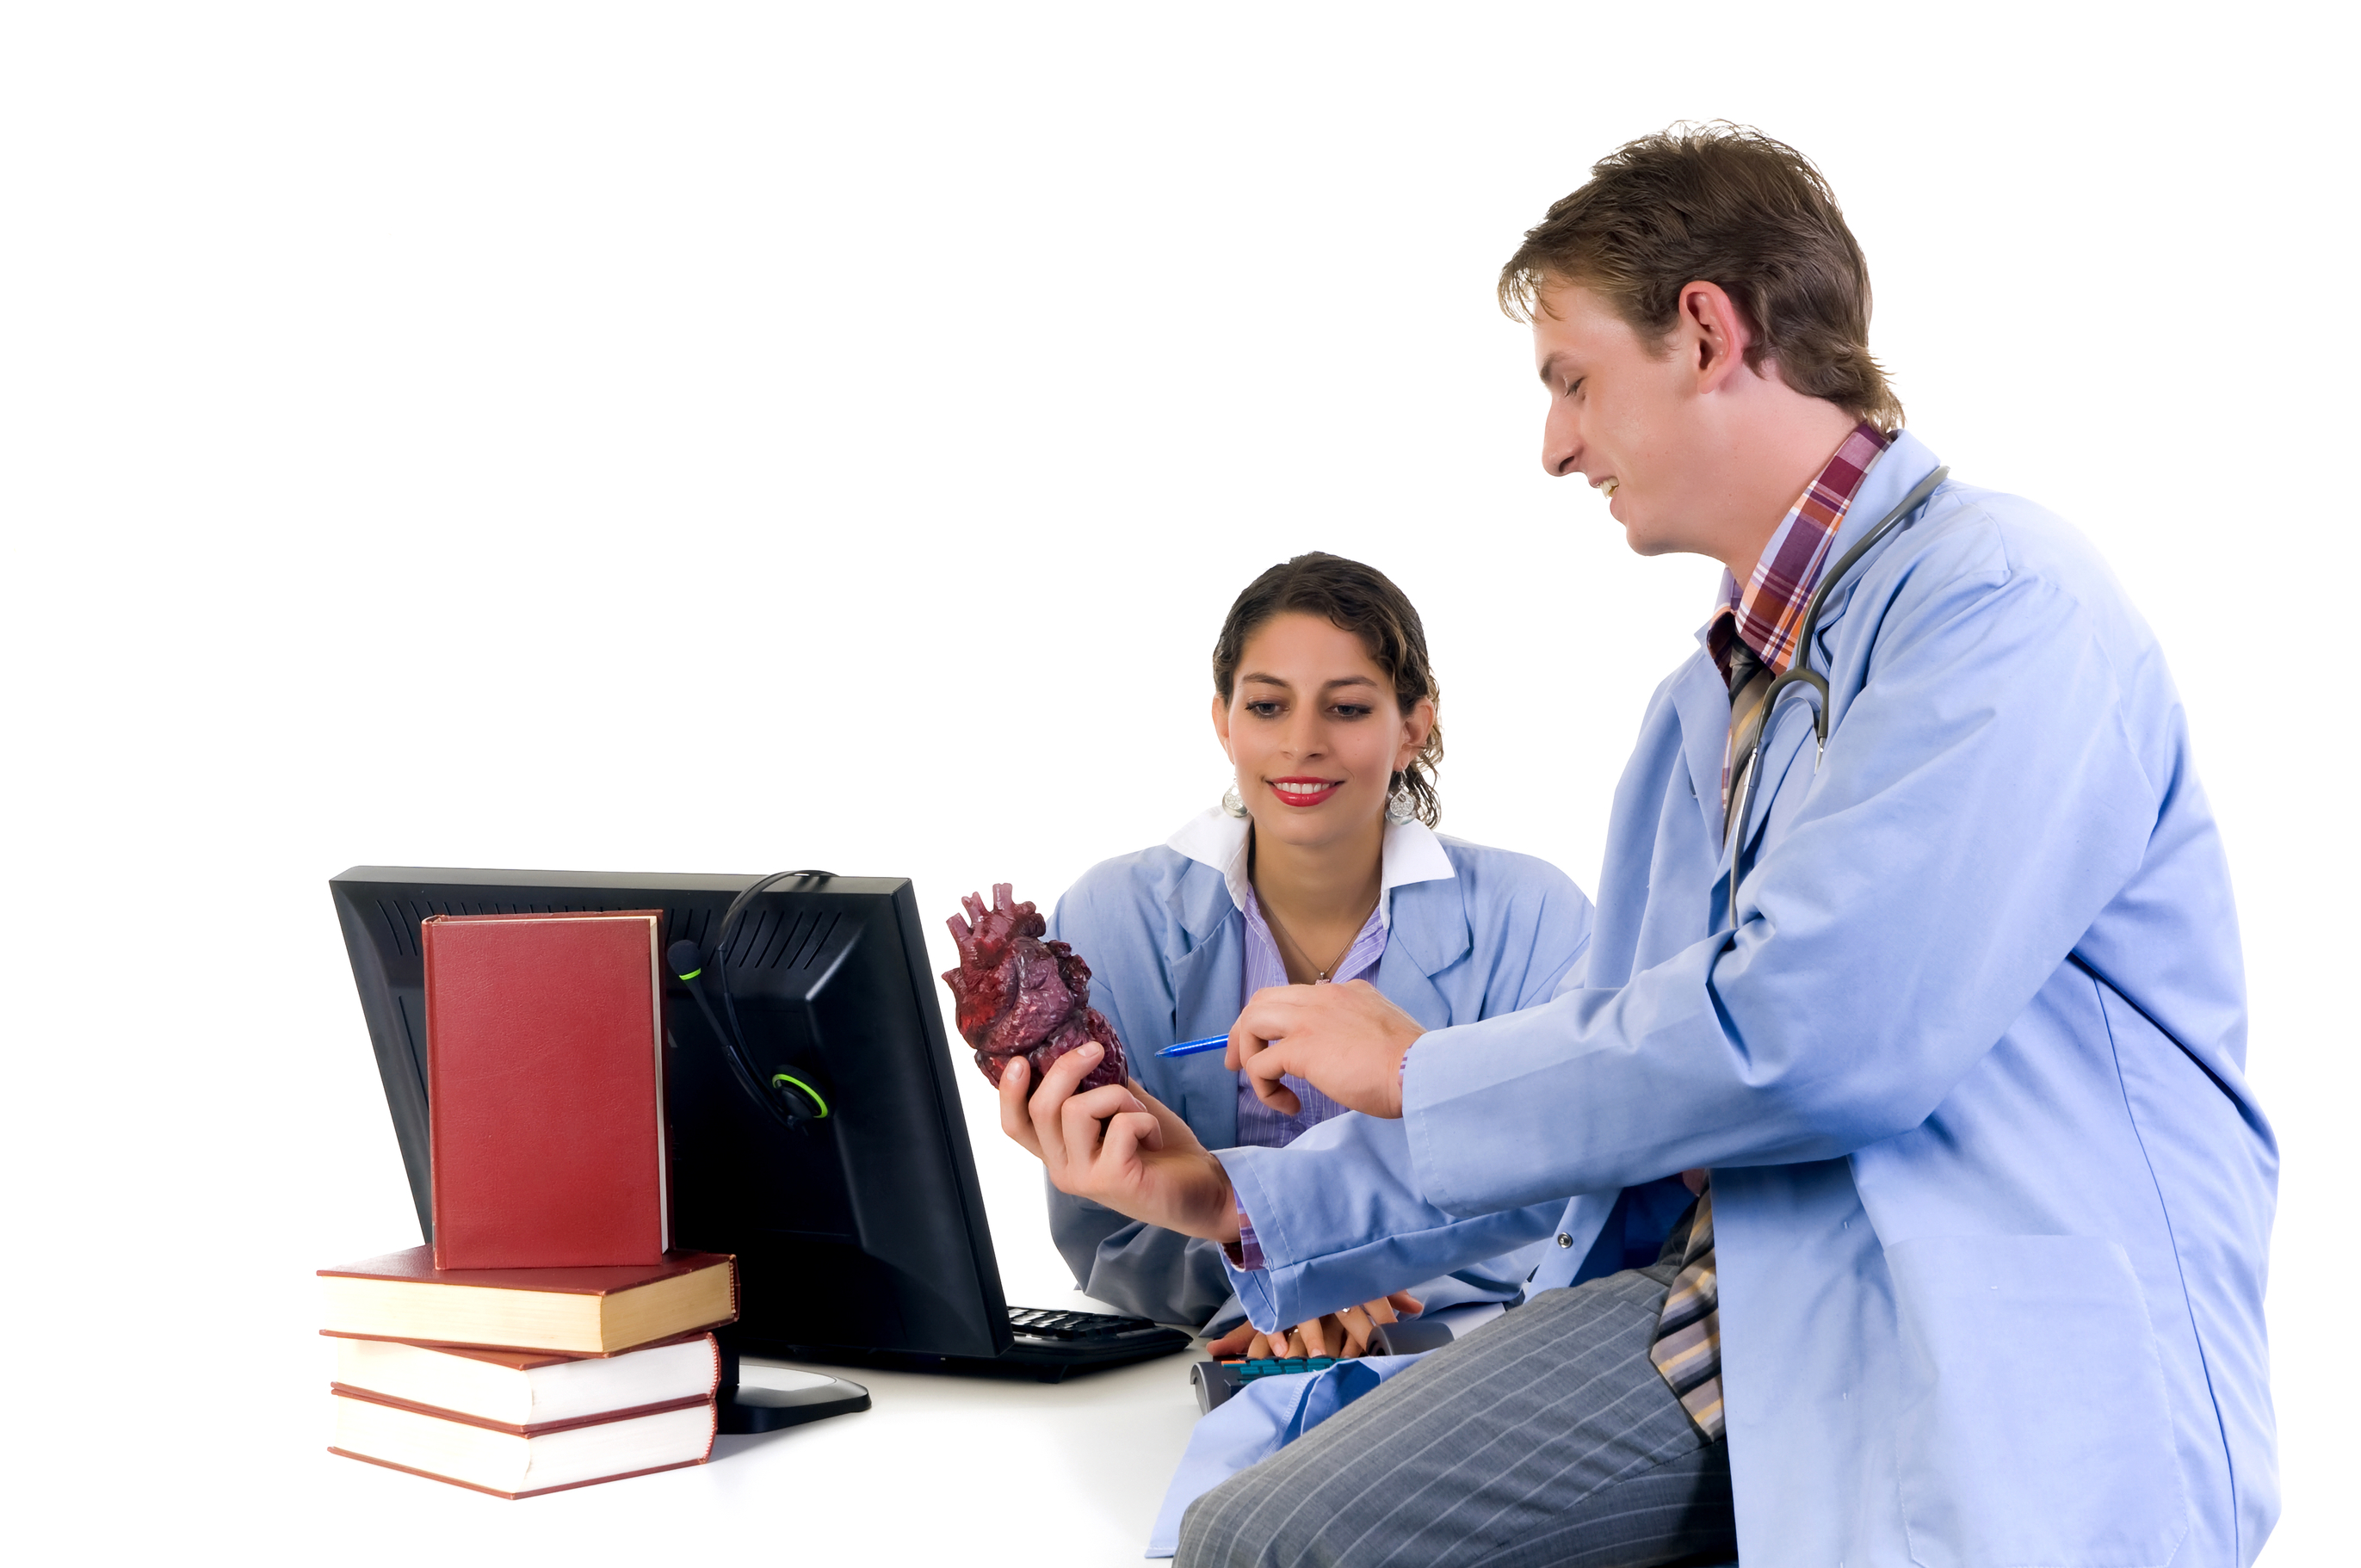 objective for resume for medical assistant%0A Medical Biller and Coder Jobs are high demand A Medical Billing  Certification has earning power